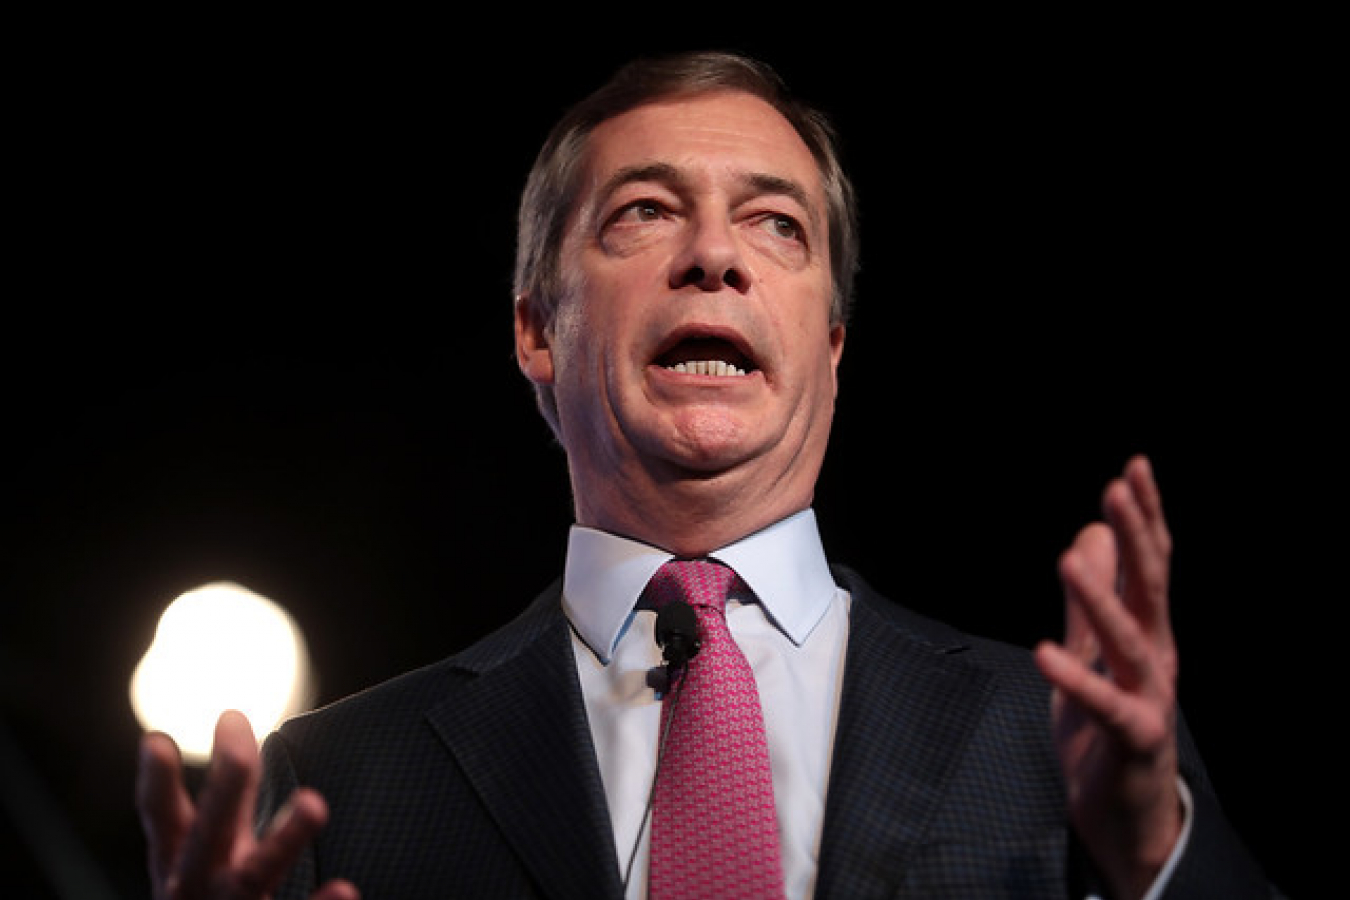 Nigel Farage, Leader of Brexit Party